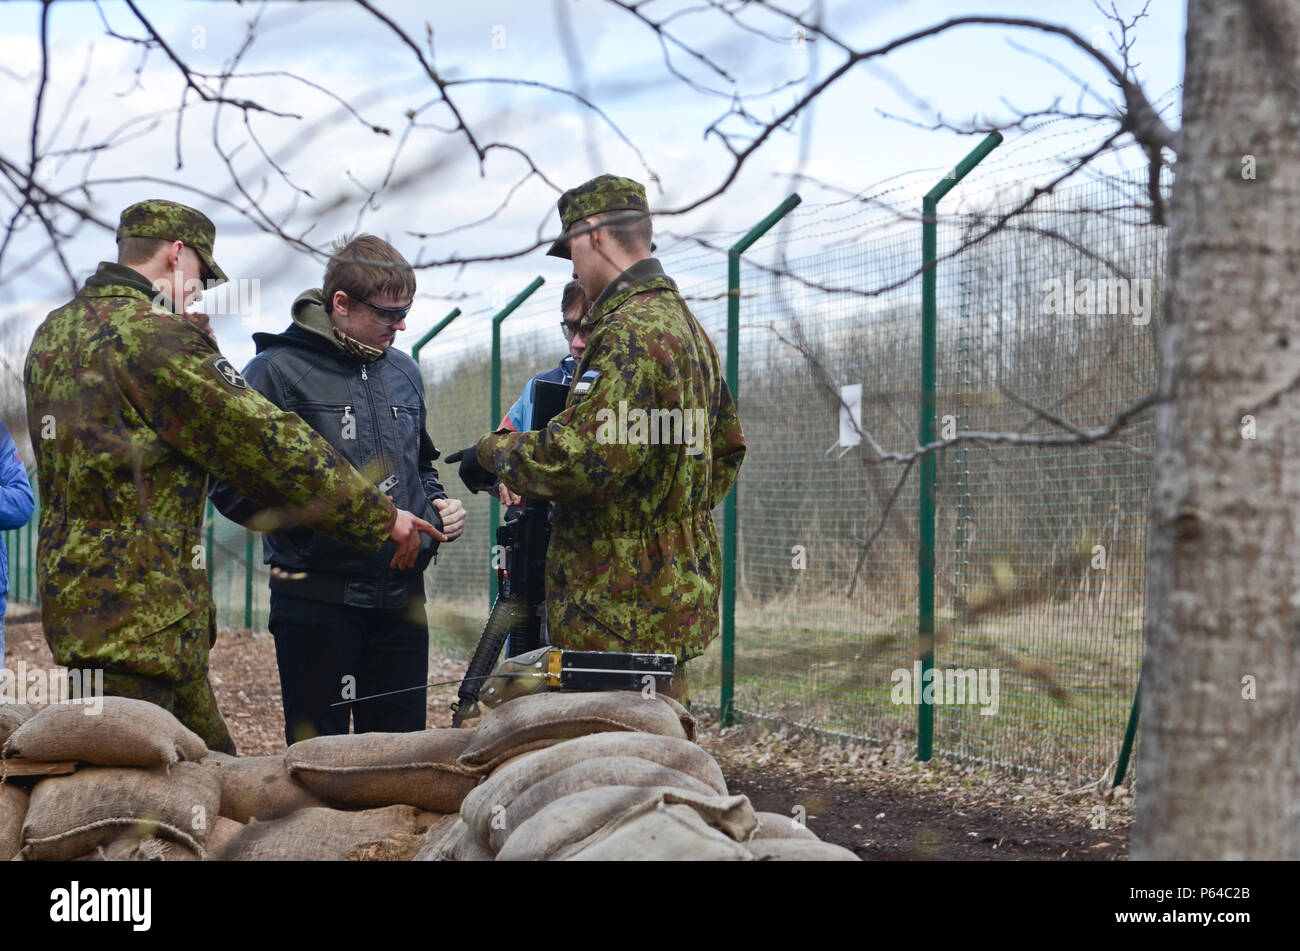 Estonian Army Soldiers help school-aged children load their weapons with plastic pellets for the lane patrol exercise during an open house at Tapa Training Base, Estonia, April 23, 2016. (U.S. Army Photo by Staff Sgt. Steven M. Colvin) - Stock Image